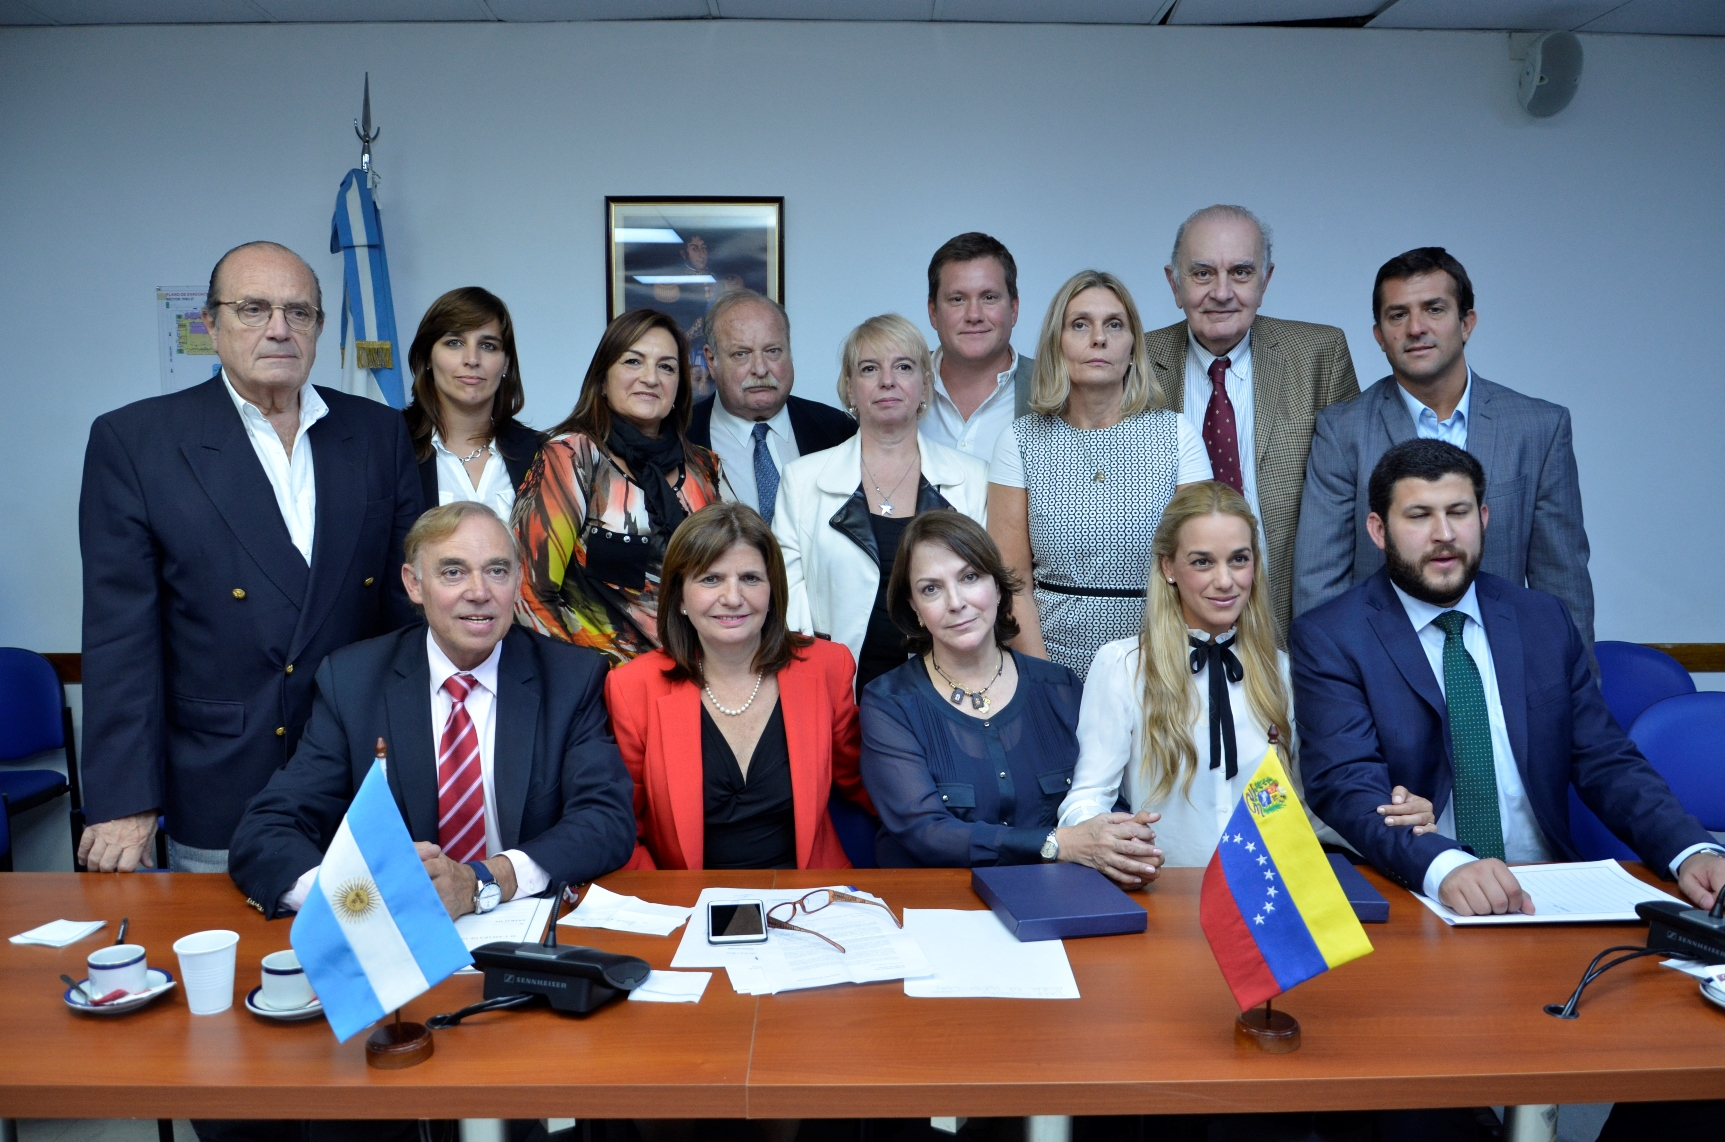 Argentinean congressmen called for the respect of human rights in Venezuela